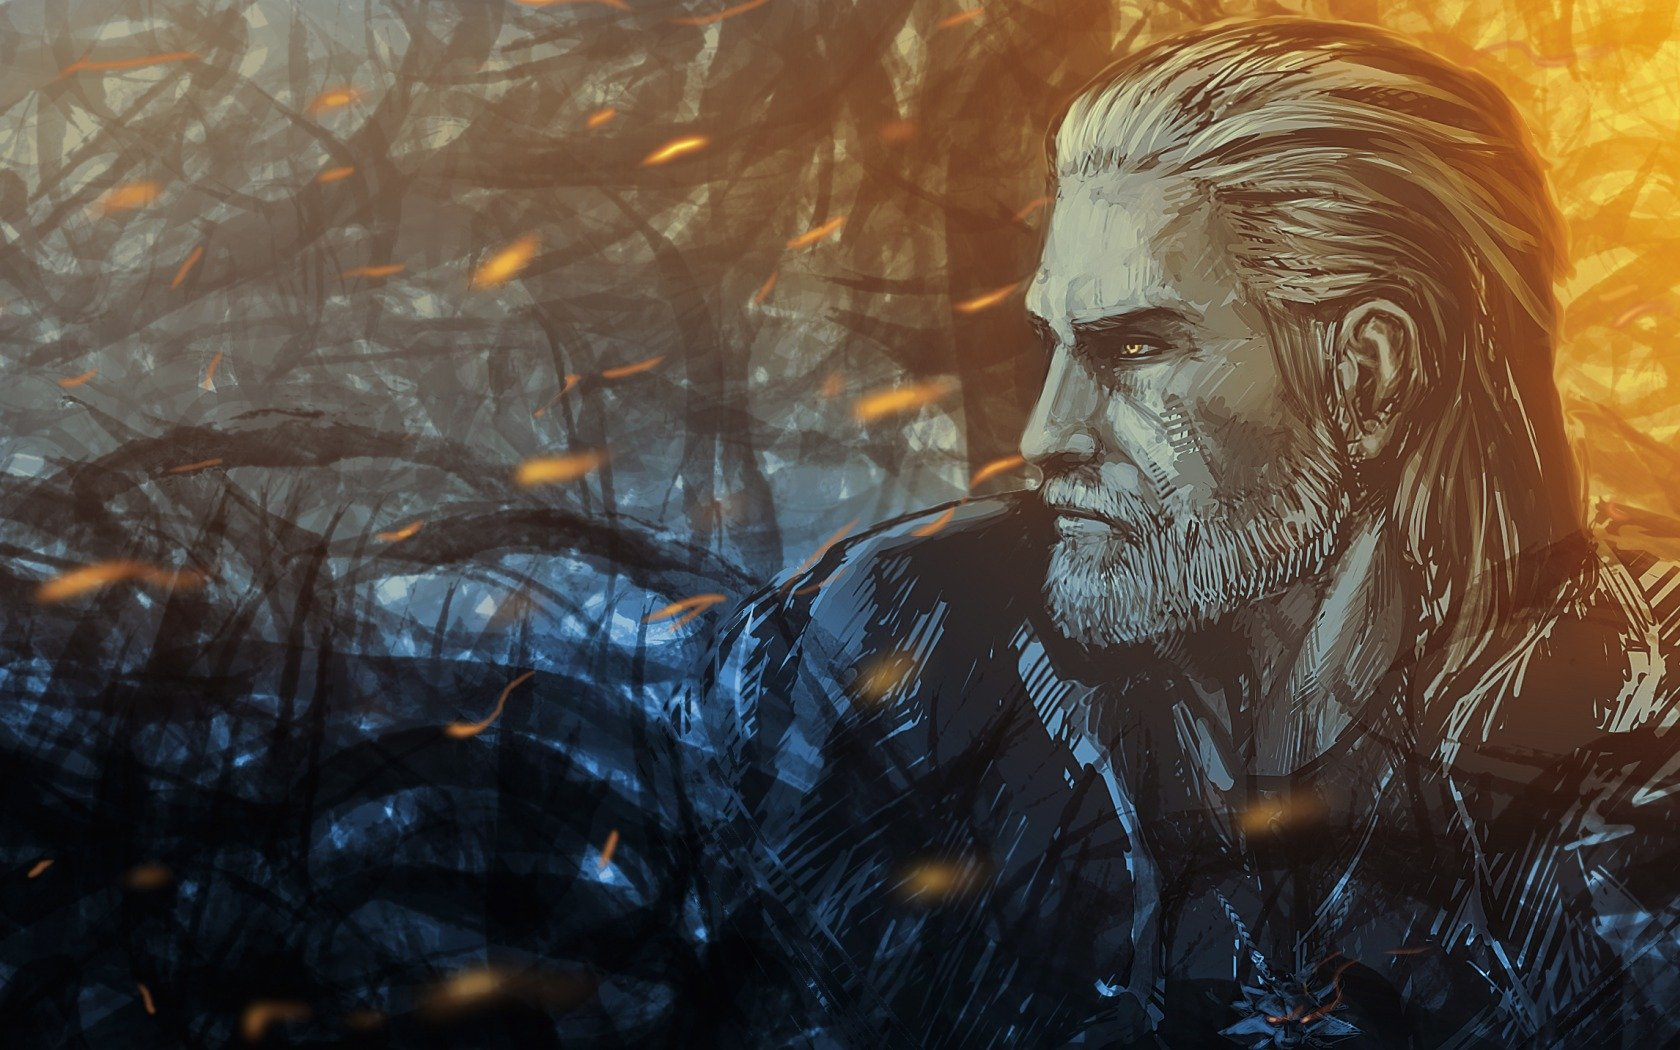 The witcher art